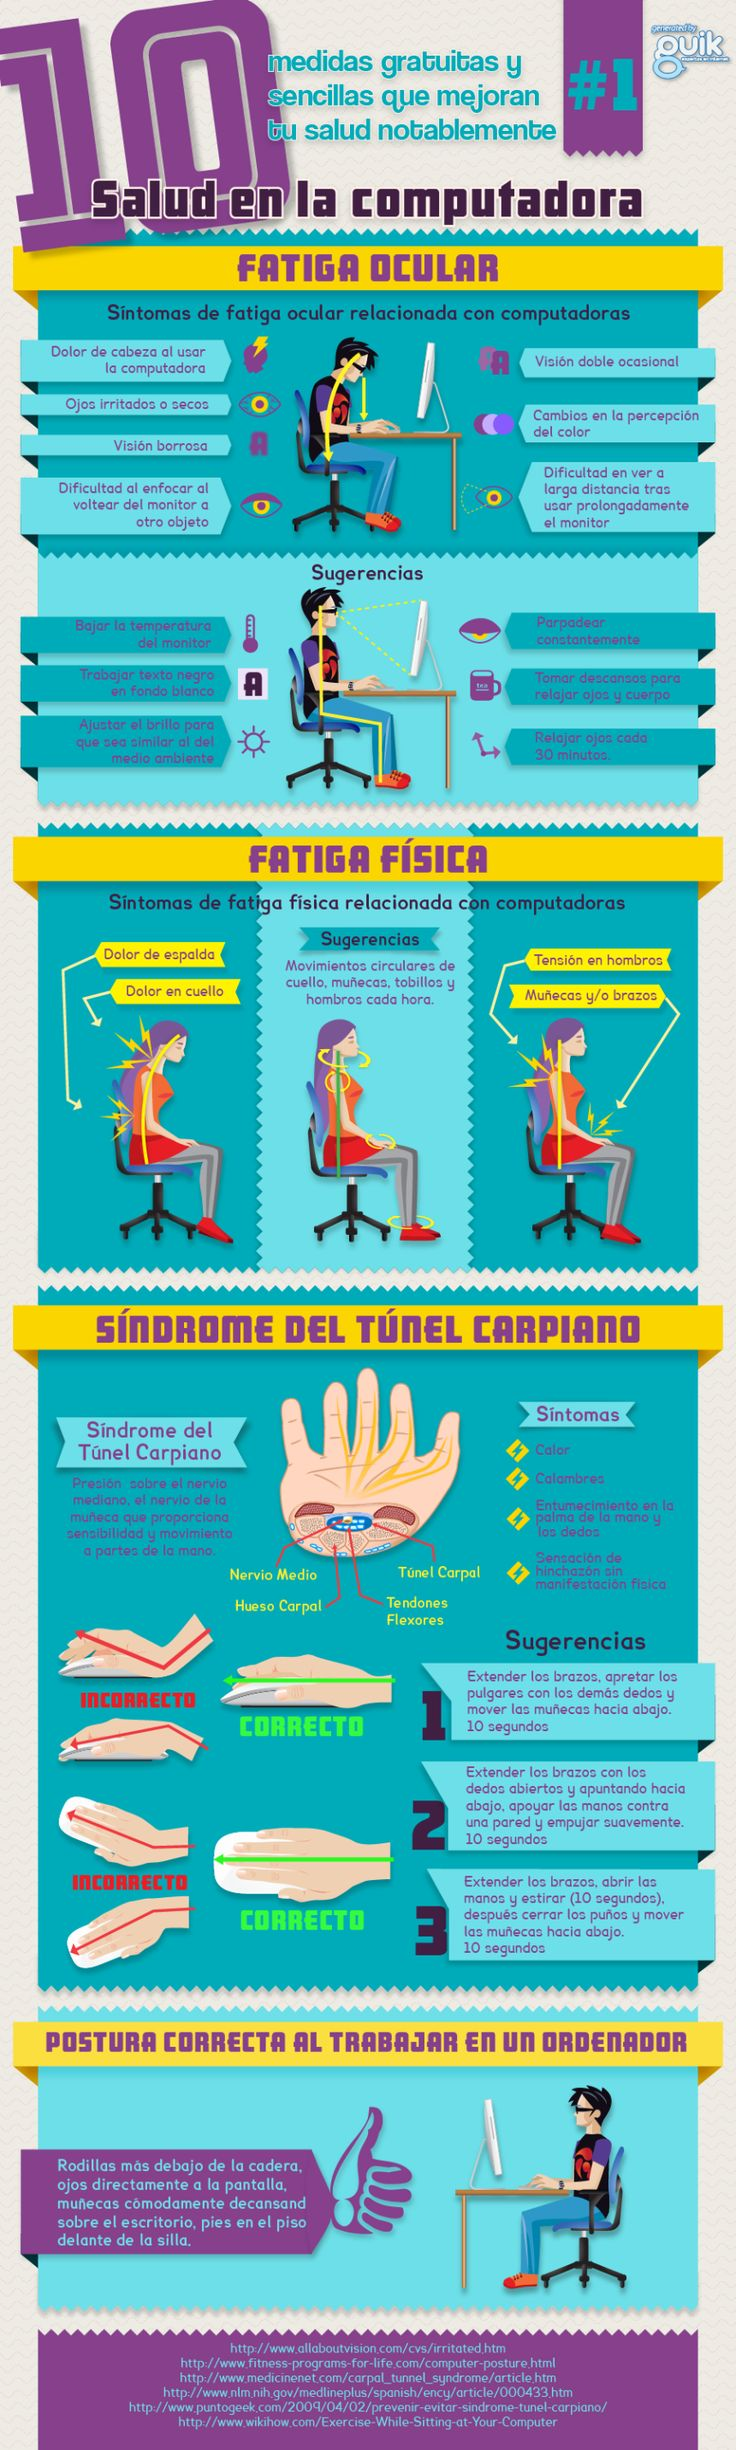 http://ticsyformacion.com/category/prevencion-de-riesgos-laborales/page/6/